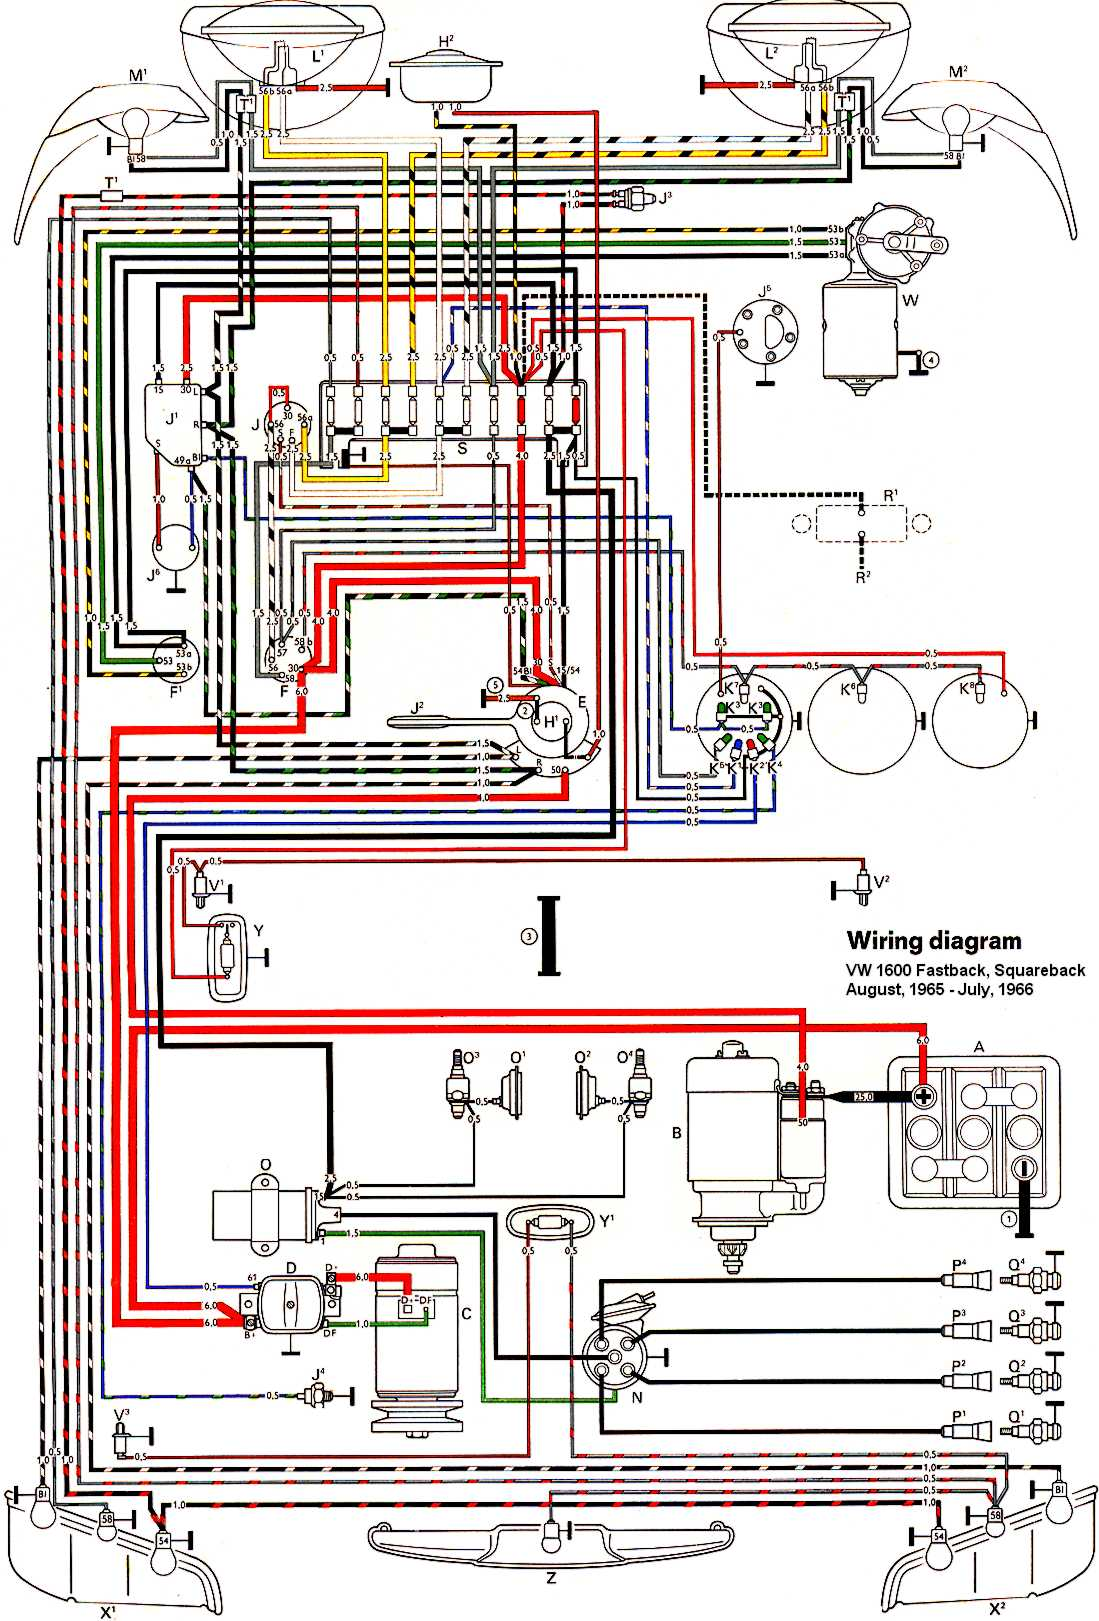 type3_1600_66 2003 vw beetle wiring diagram 2003 nissan maxima wiring diagram DIY Lingerie Harness at virtualis.co